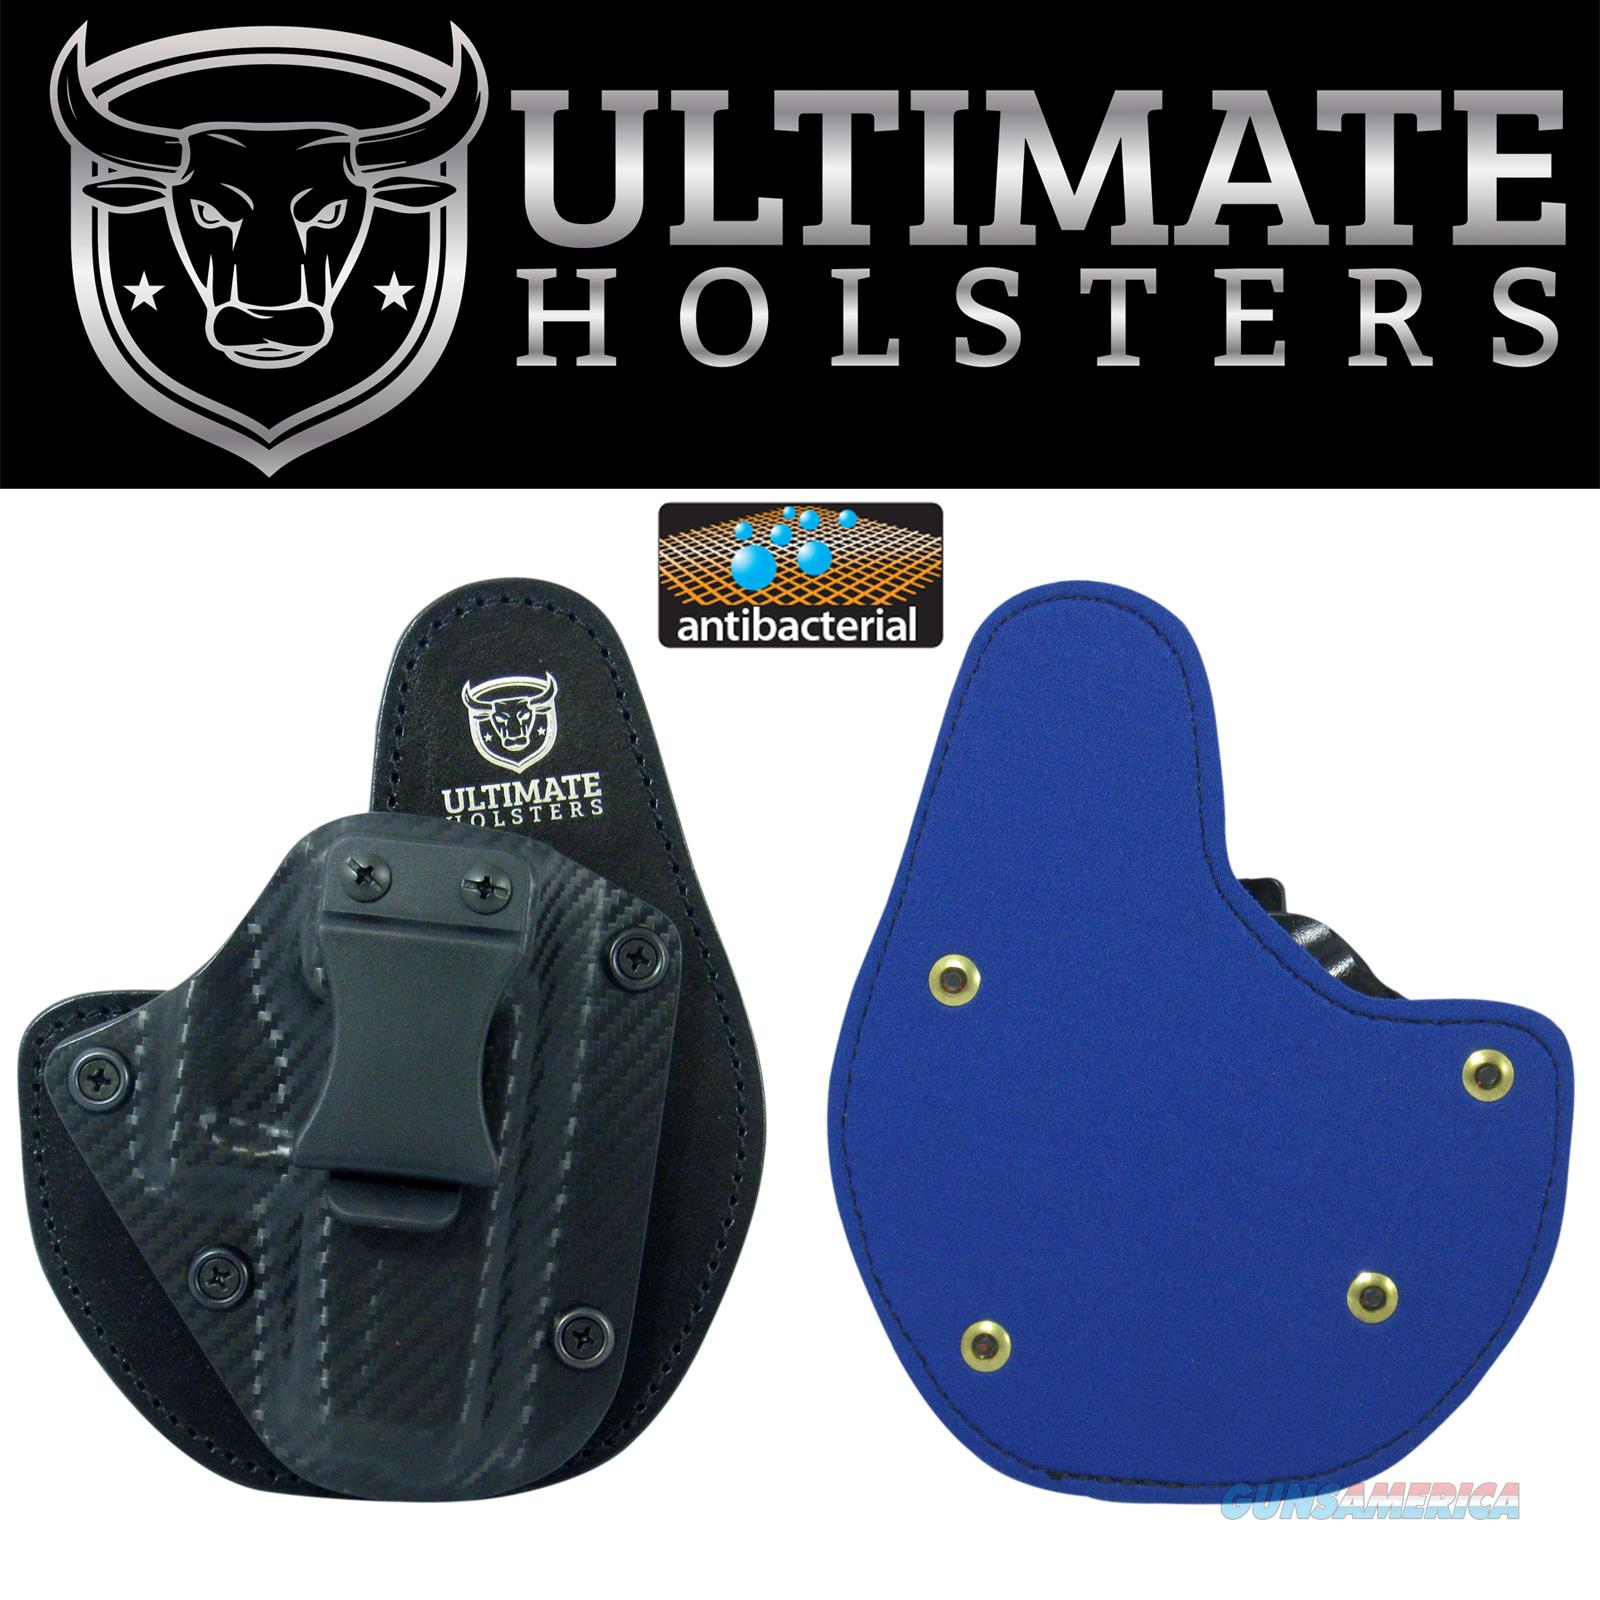 Walther PPS Cloud Tuck Rapid Hybrid Holster- Most Comfortable Holster- Antimicrobial Padding   Non-Guns > Holsters and Gunleather > Concealed Carry